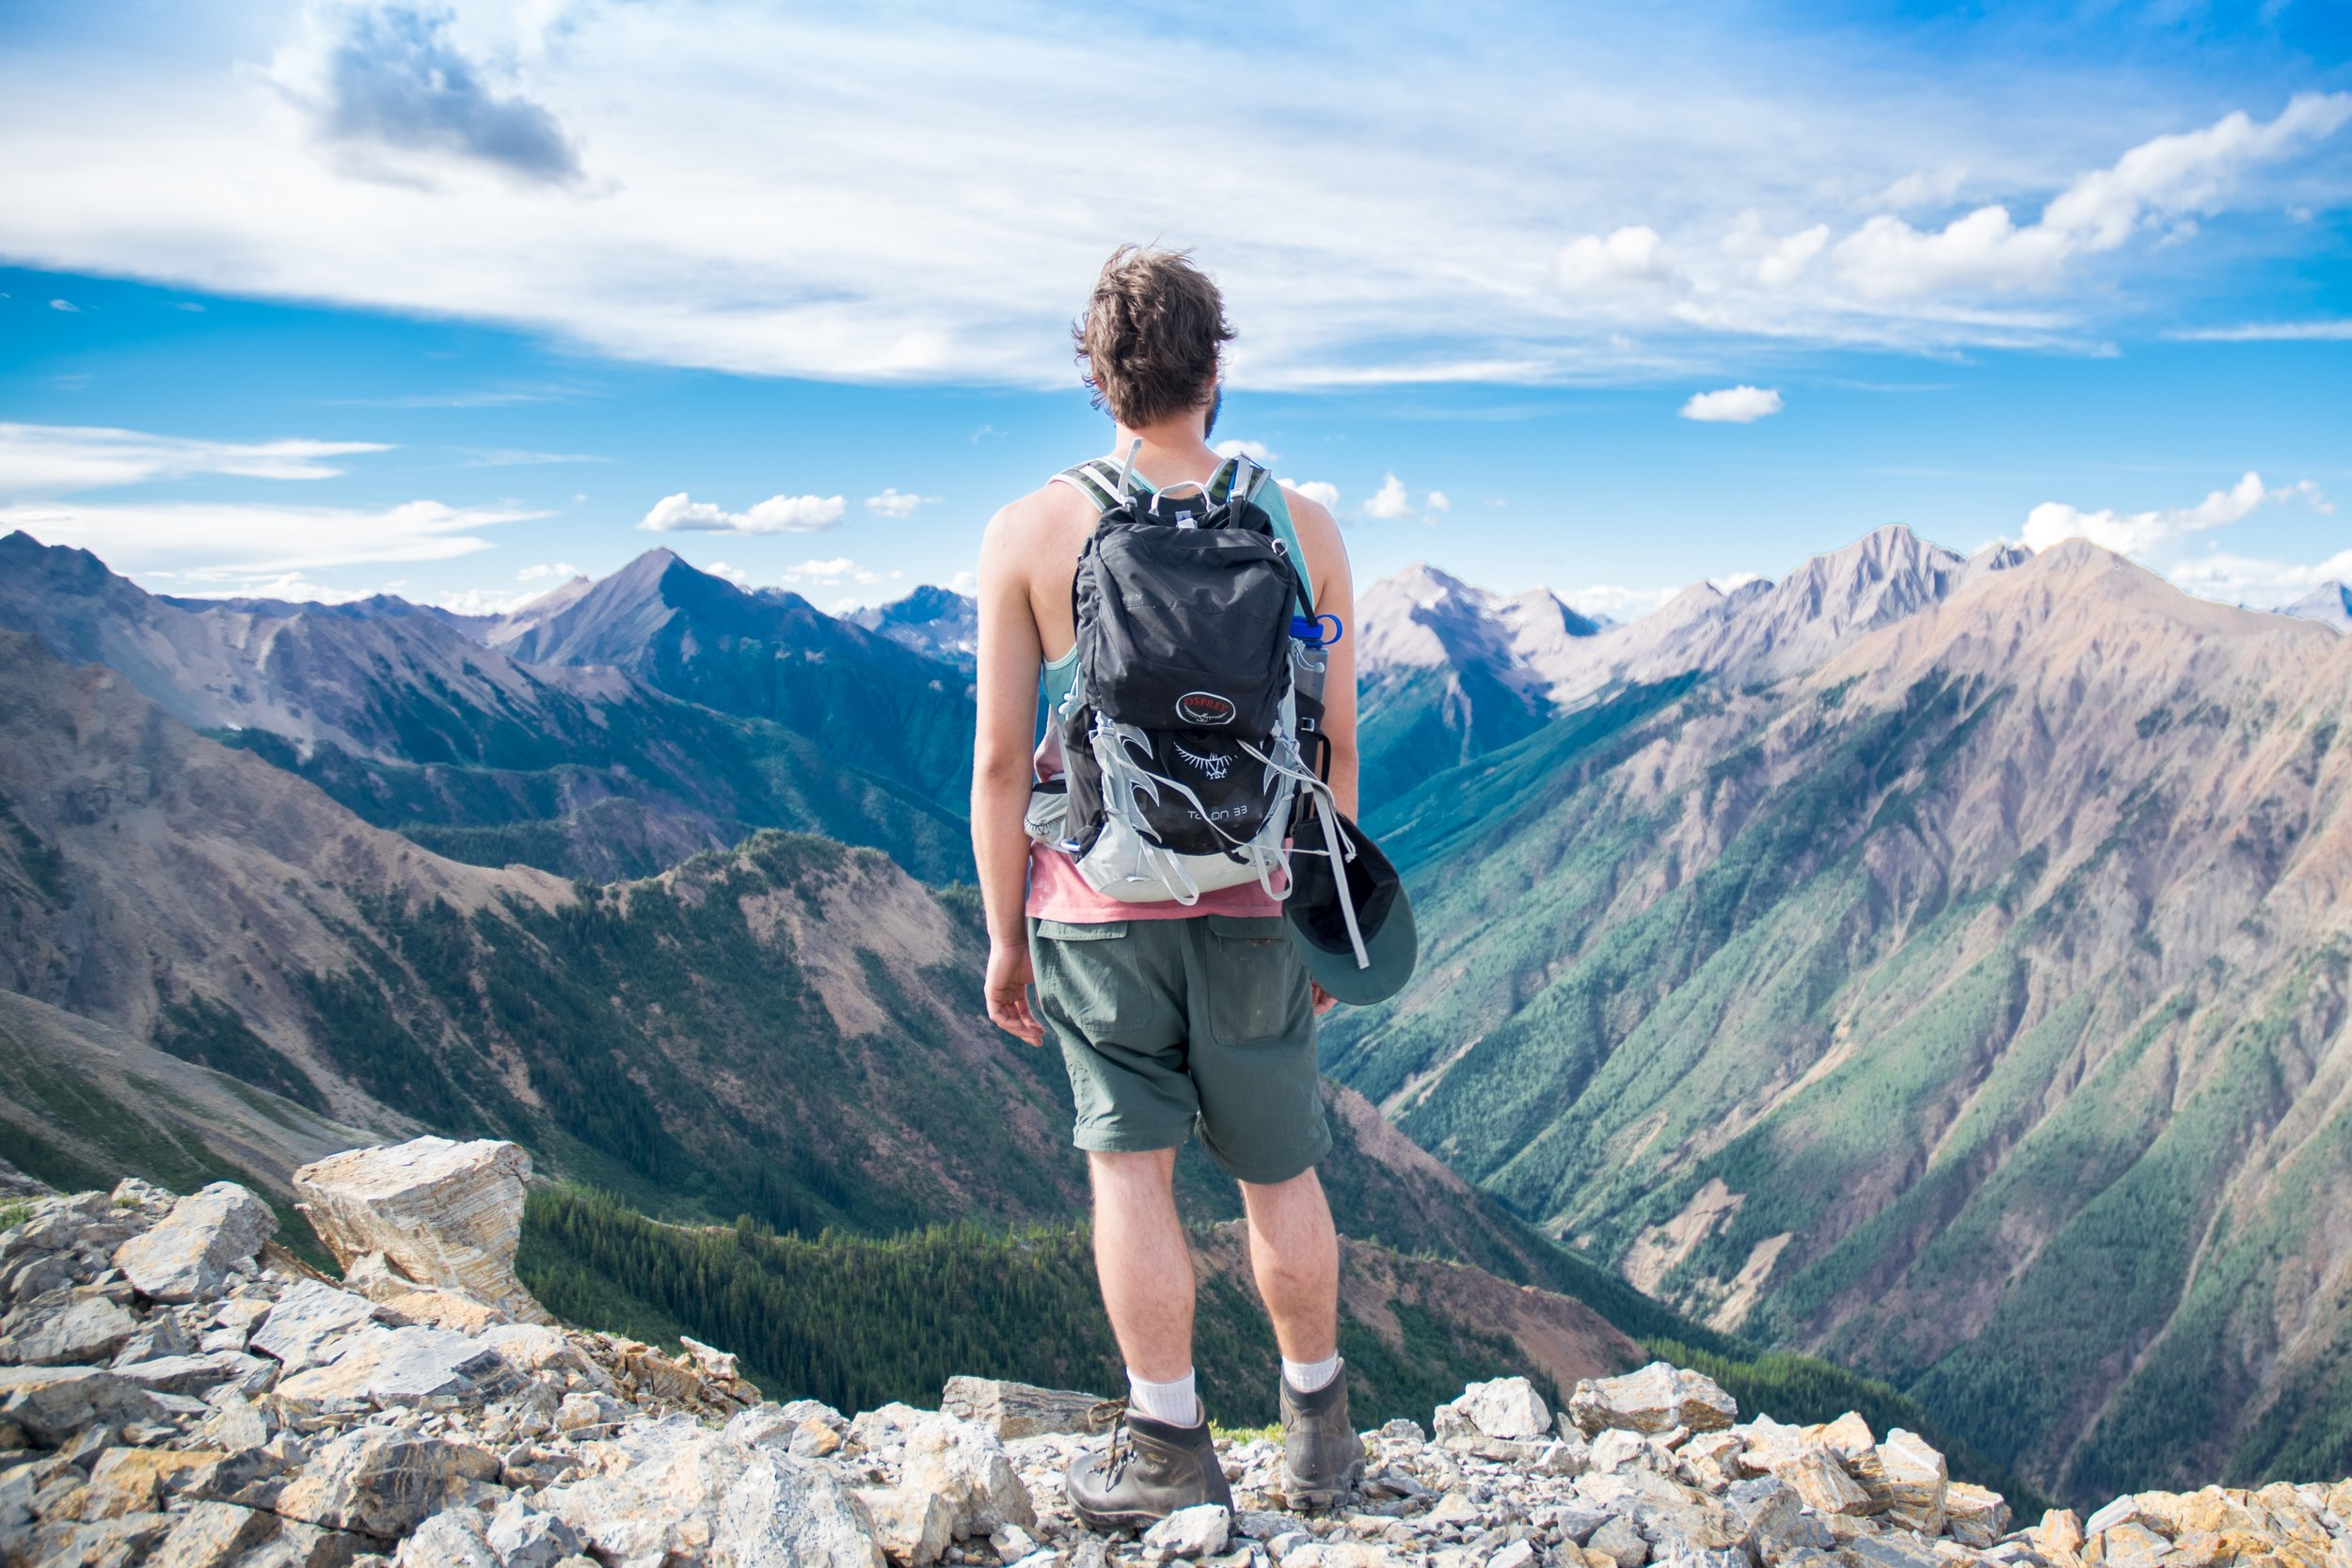 Does that mountain look steep to you? It depends on how heavy your backpack feels.